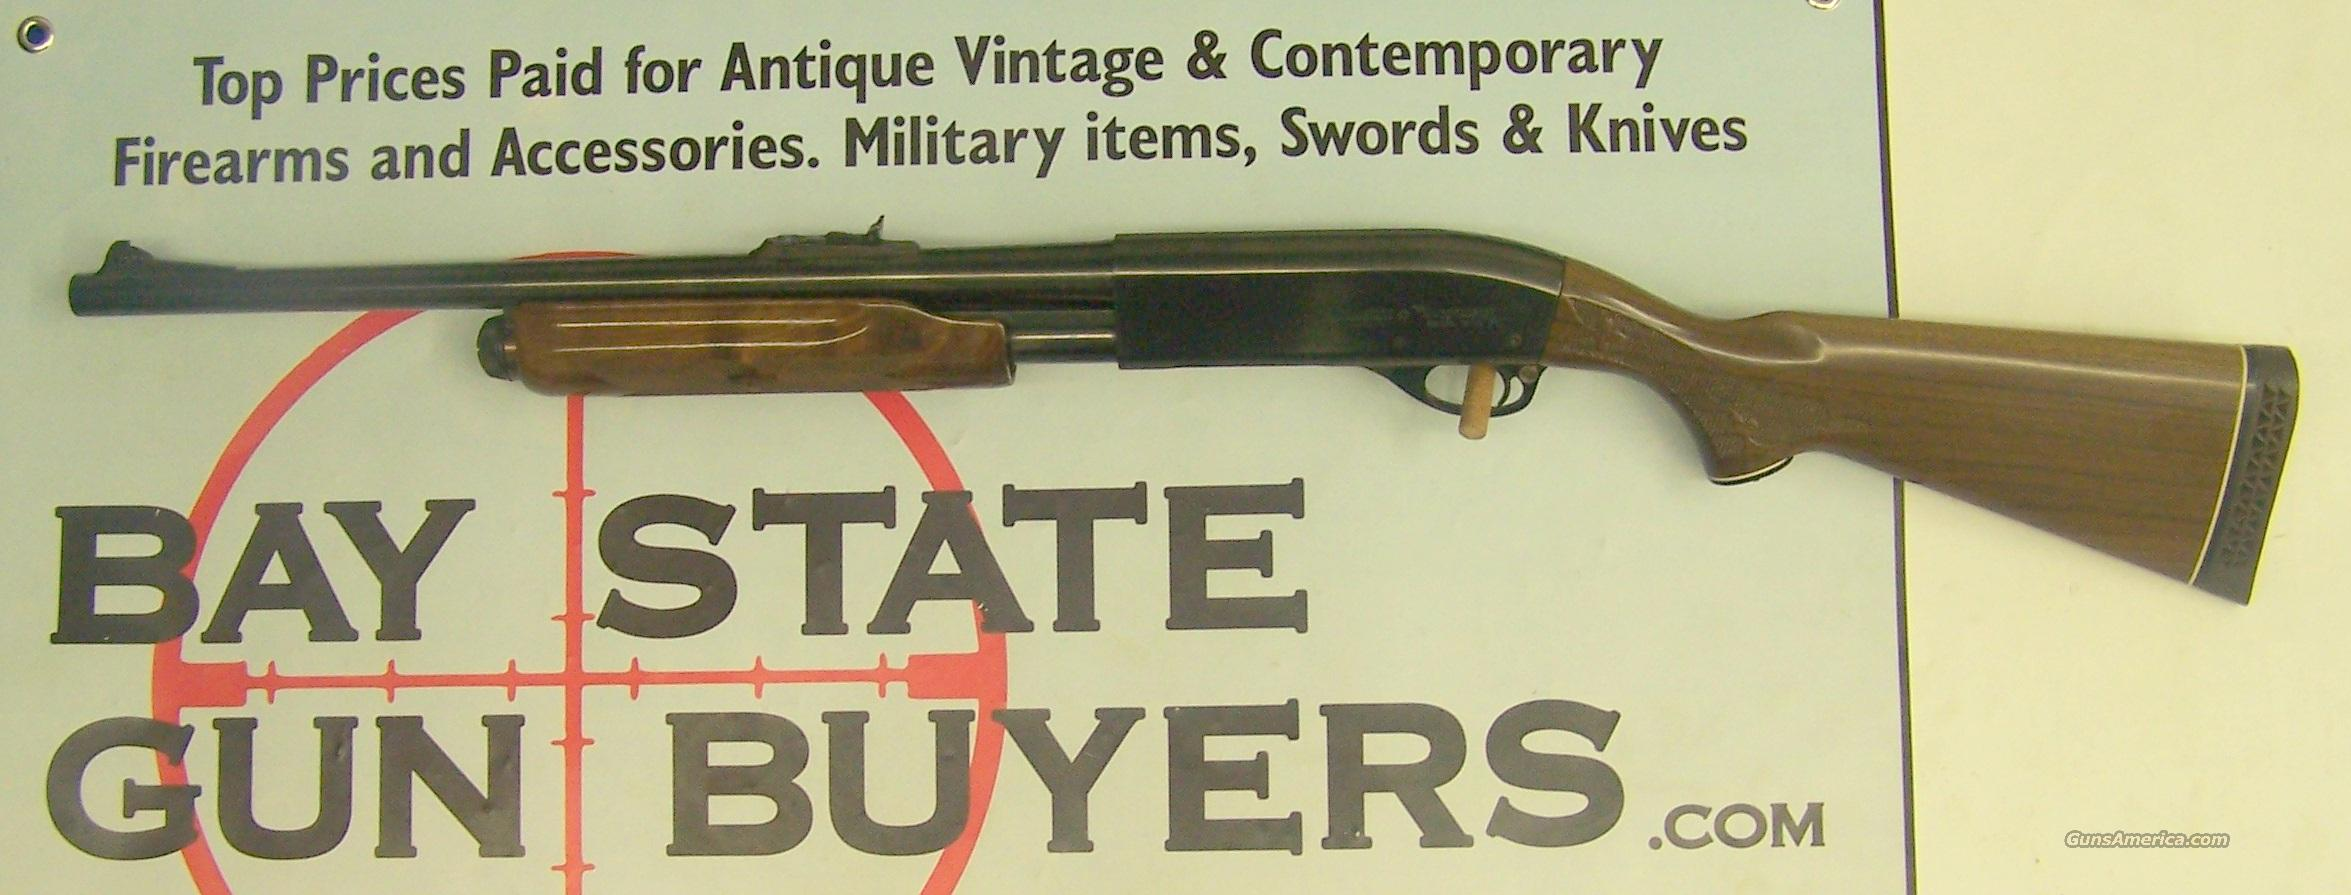 Remington Model 870 Wingmaster pump shotgun 12 Gauge   Guns > Shotguns > Remington Shotguns  > Pump > Hunting